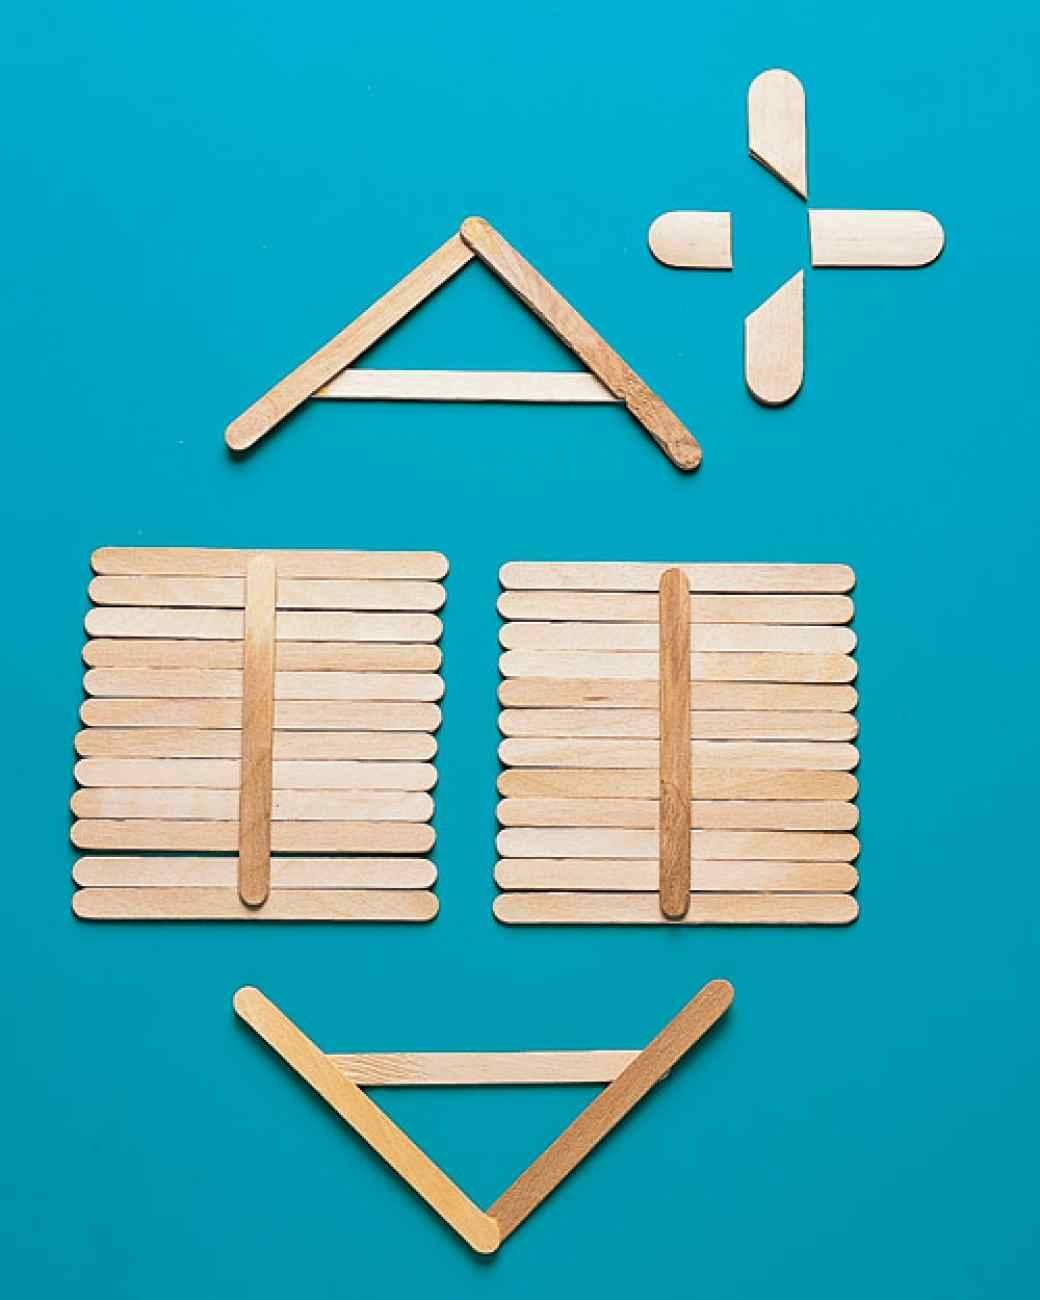 Popsicle stick church craft - Made By Gluing Together Popsicle Sticks This Post Ice Pop House Is The